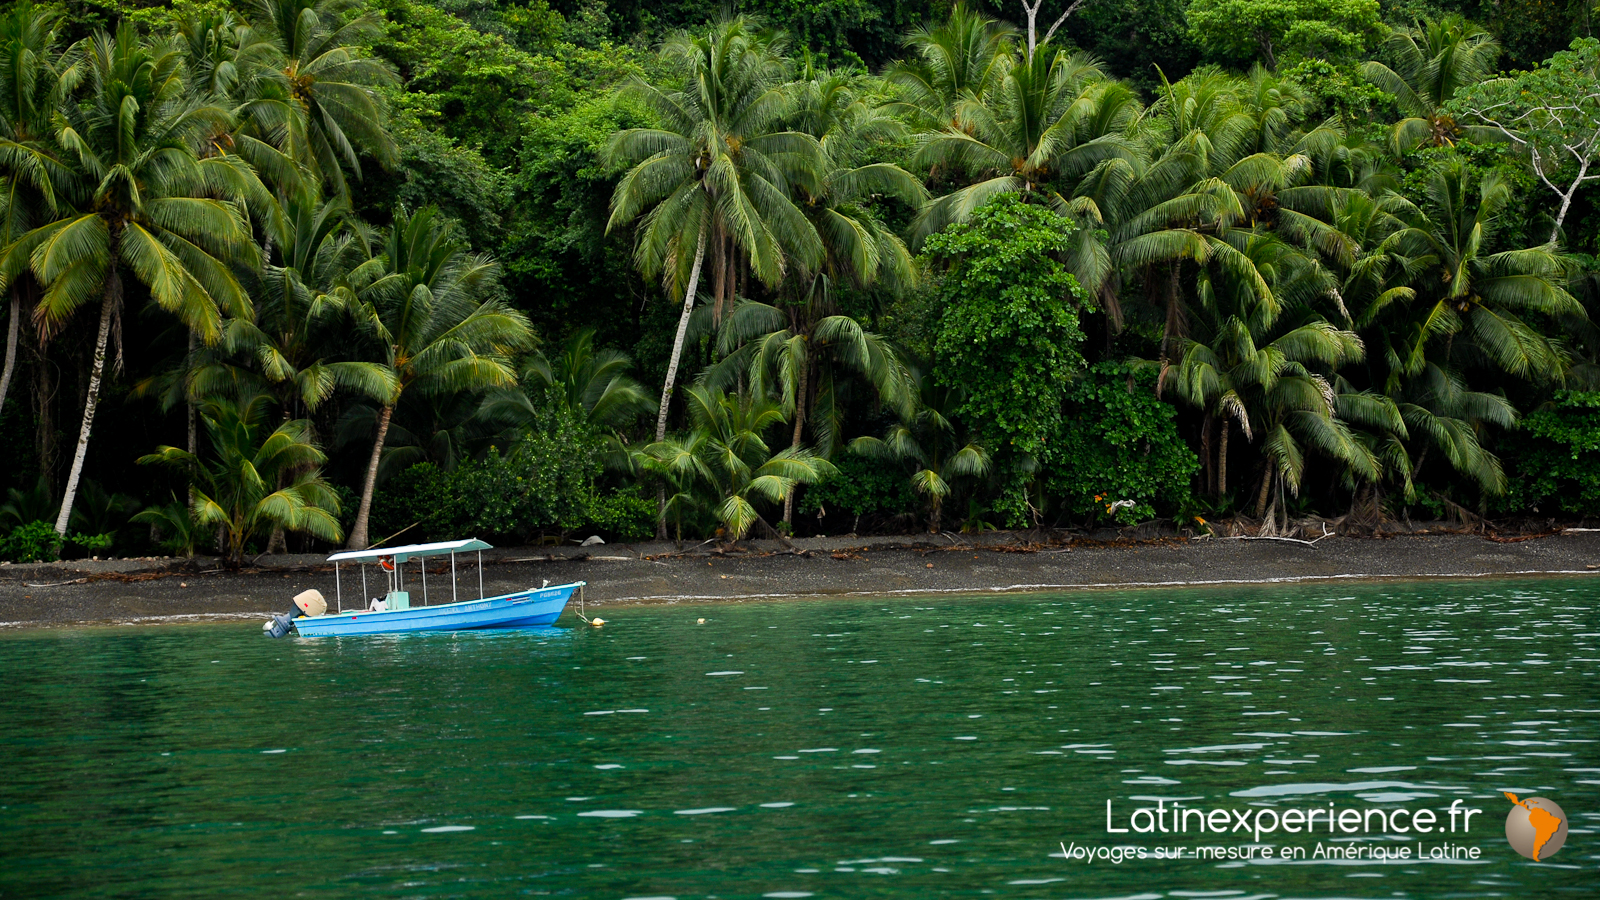 Costa Rica - Golfo Dulce - Latinexperience voyages